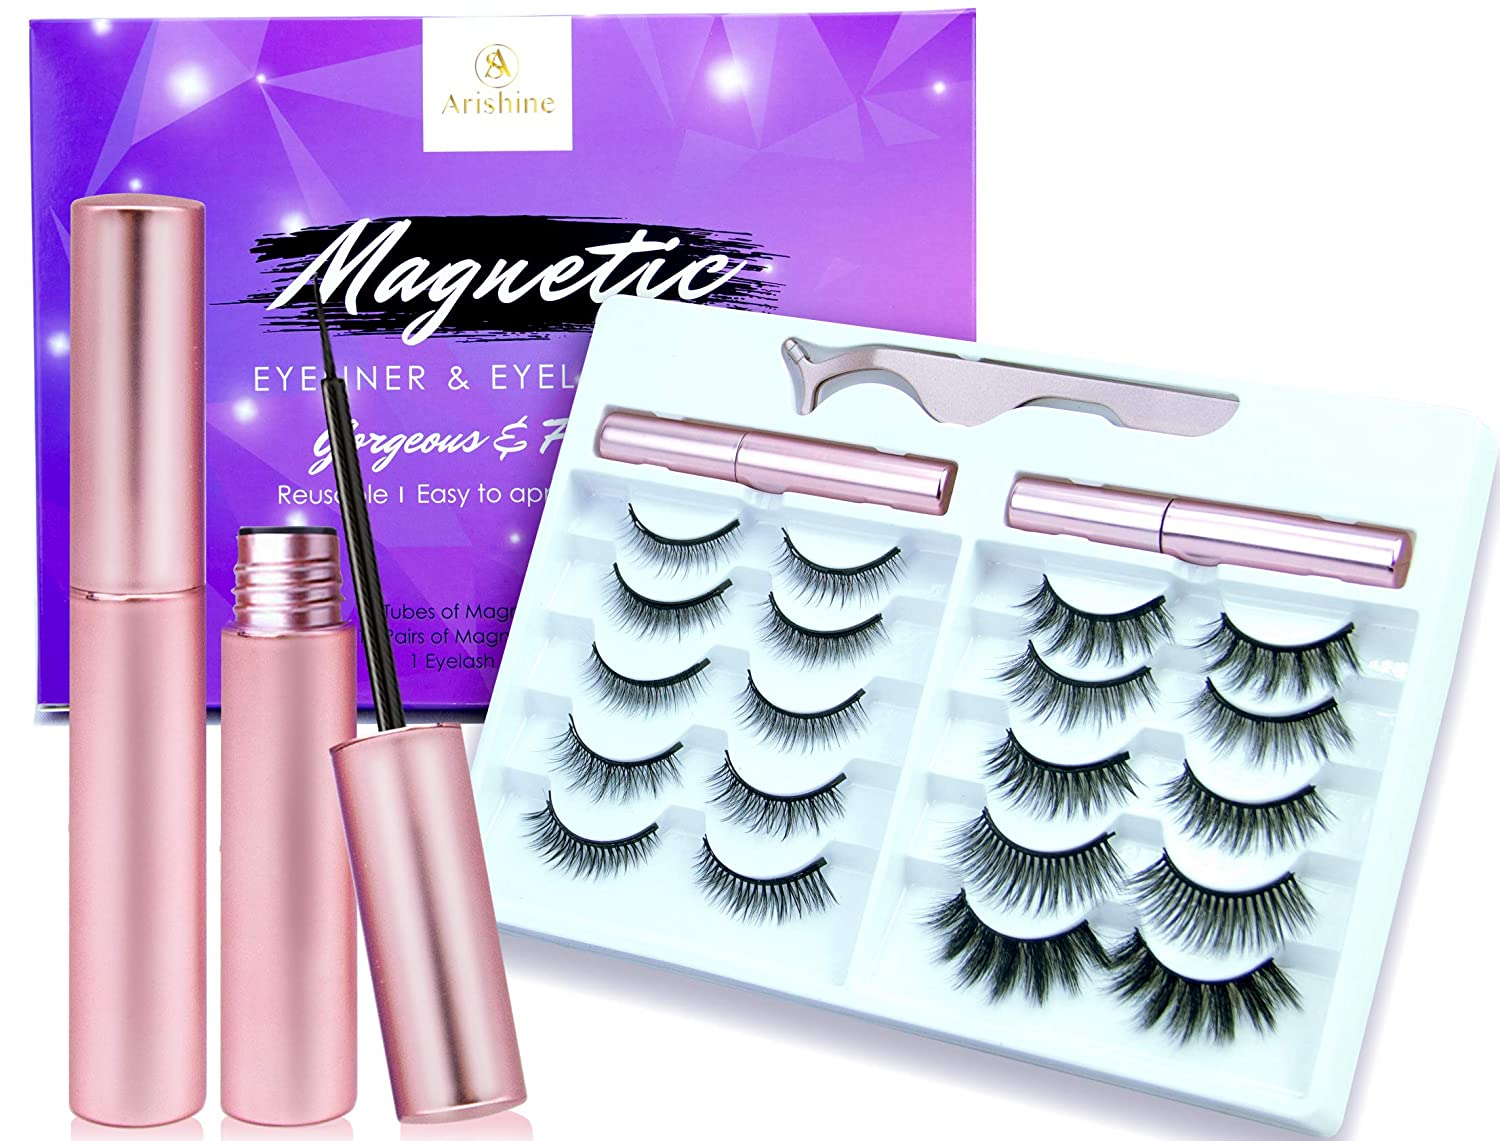 New Arishine 10 Different Pairs of Magnetic Eyelashes Kit with 2 Magnetic Eyeliners & Tweezers, Natural Look & No Glue Reusable False Lashes